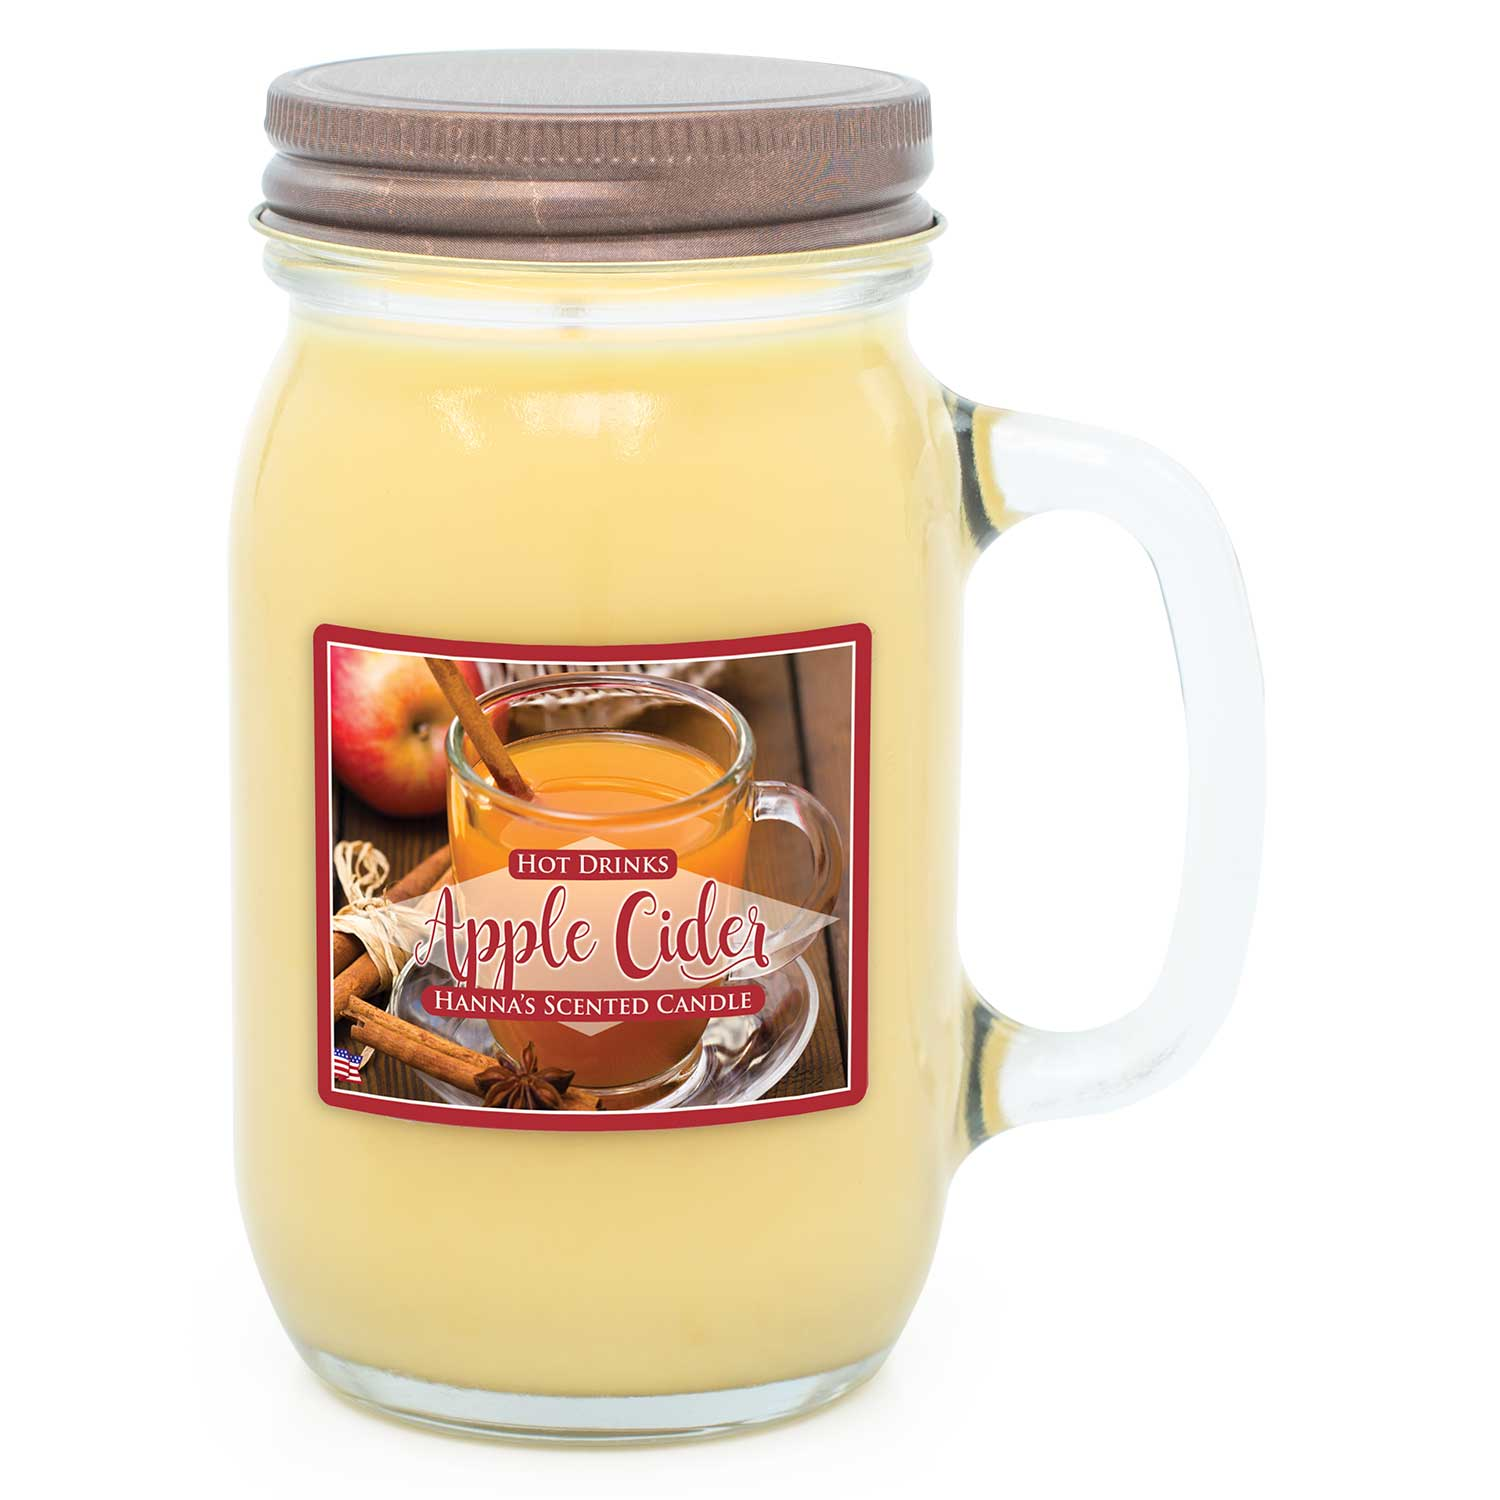 Apple Cider Scented Pint Jar Candle